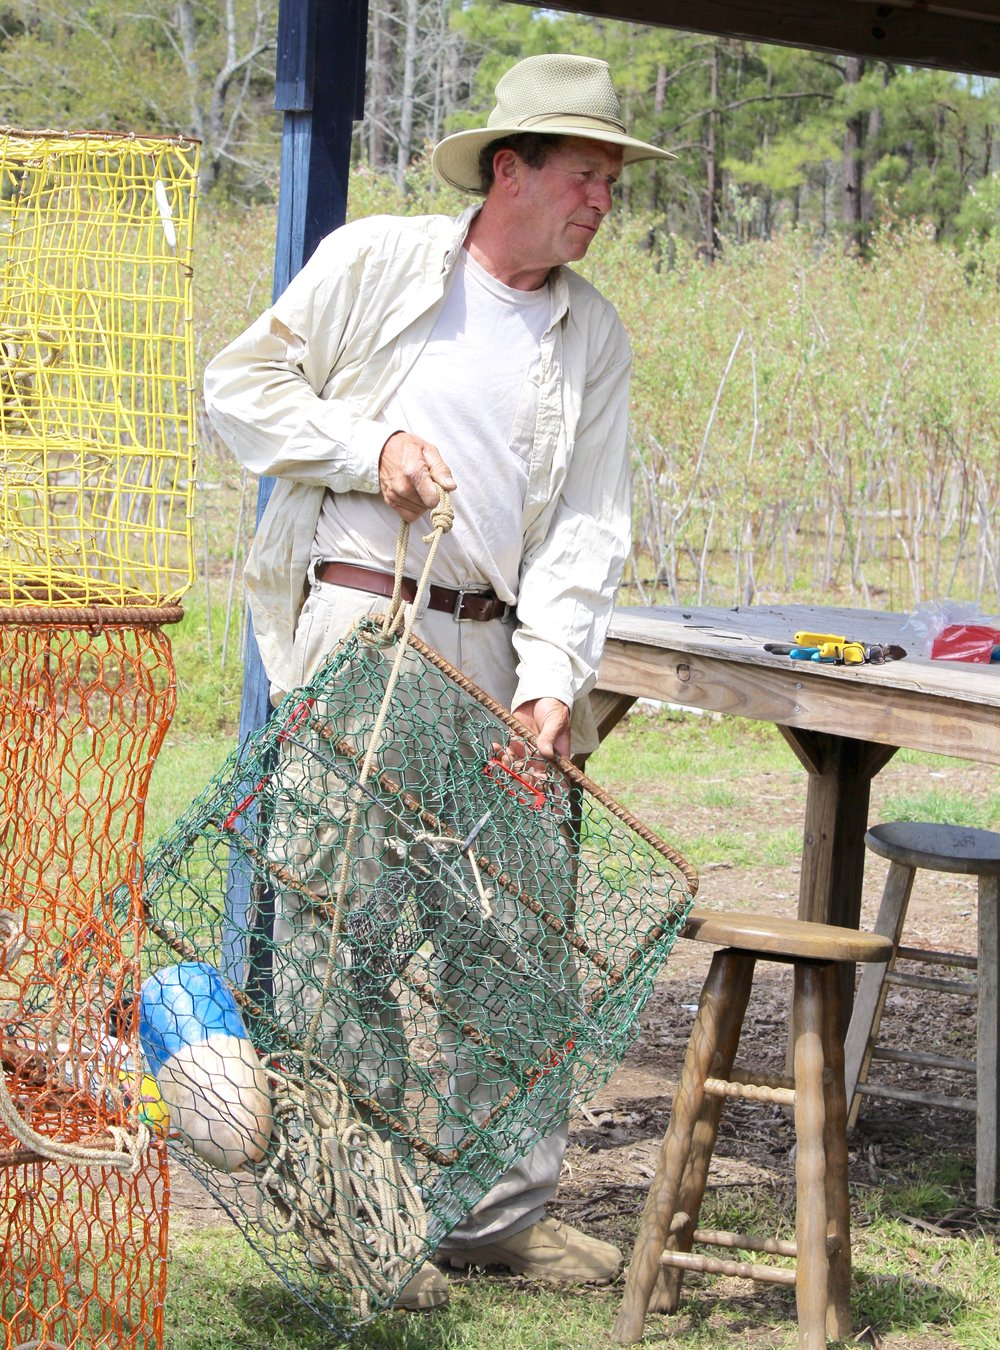 Crabber Robert Sollot finishes installing four bycatch reduction devices (BRDs) on one of his 120 crab traps. (Photo: E. Weeks/SCDNR)